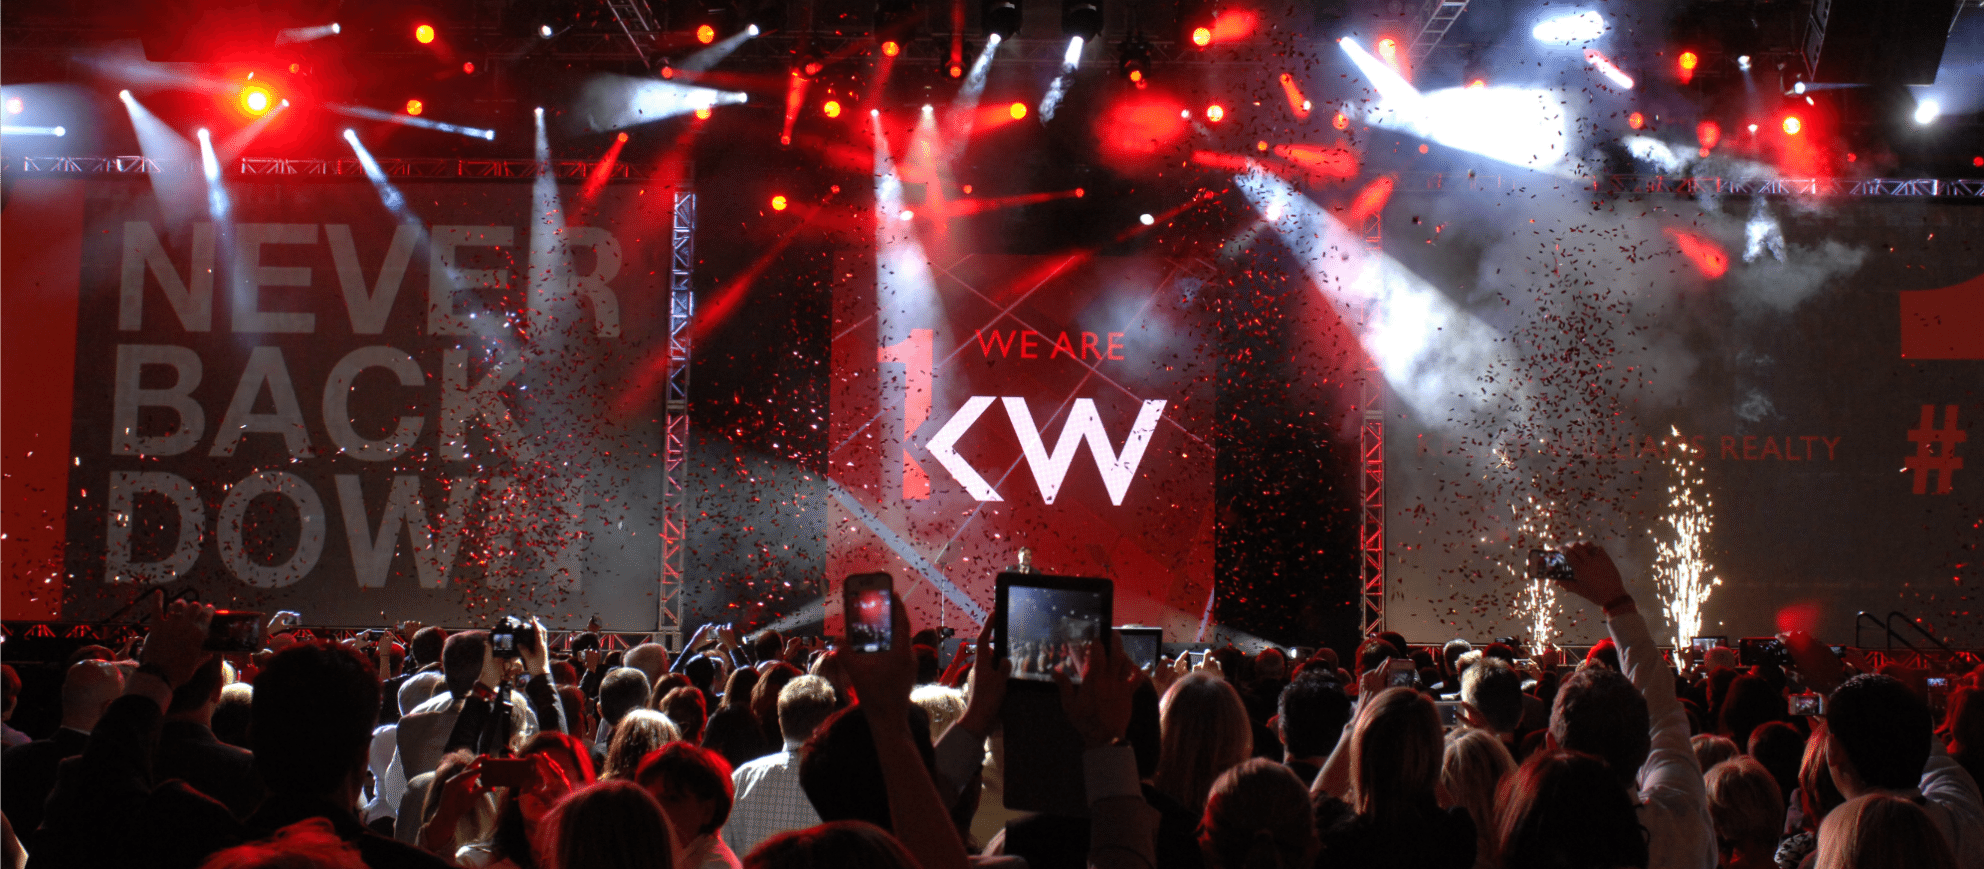 Keller Williams Realty announces major management change